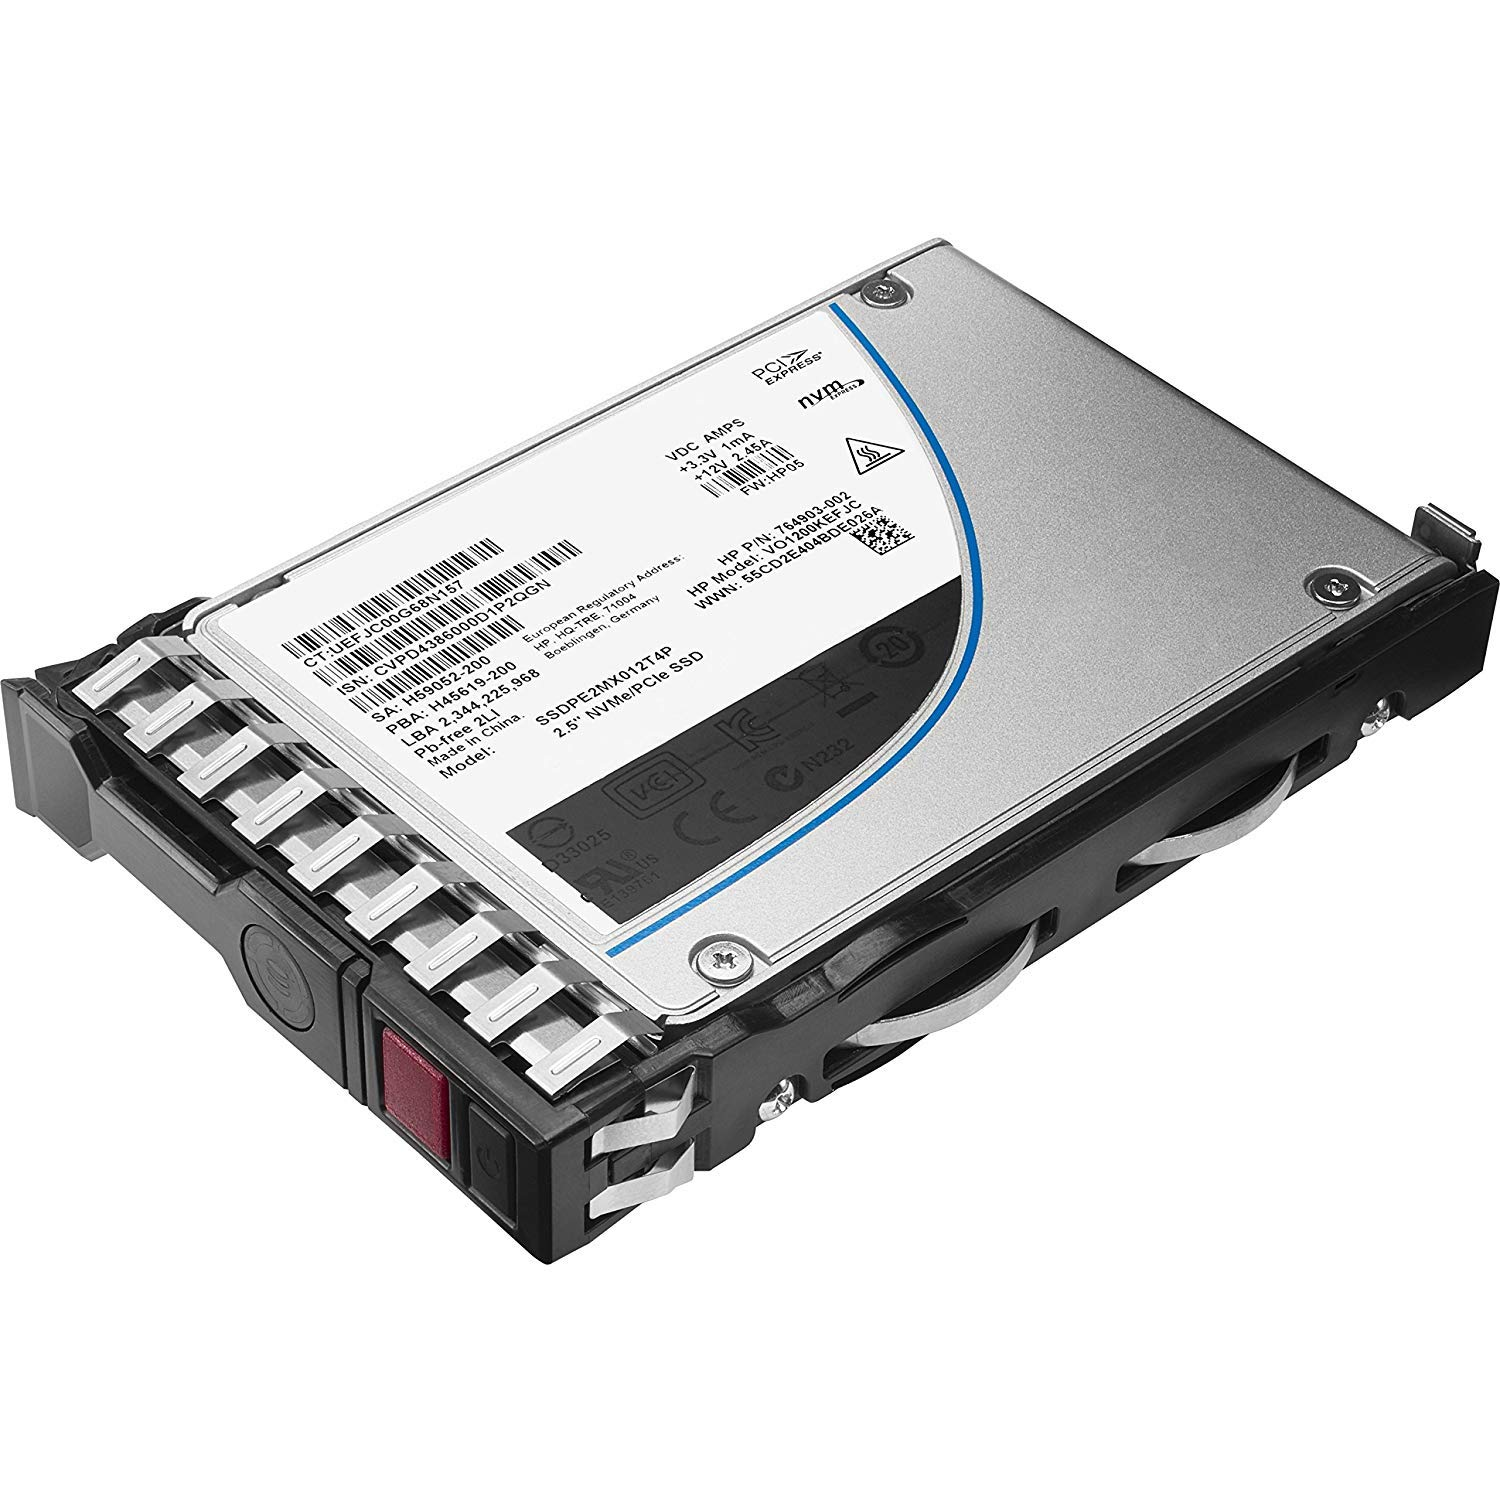 SSD 800GB SAS HP 800GB 12G MU SFF SC DS 873363 B21